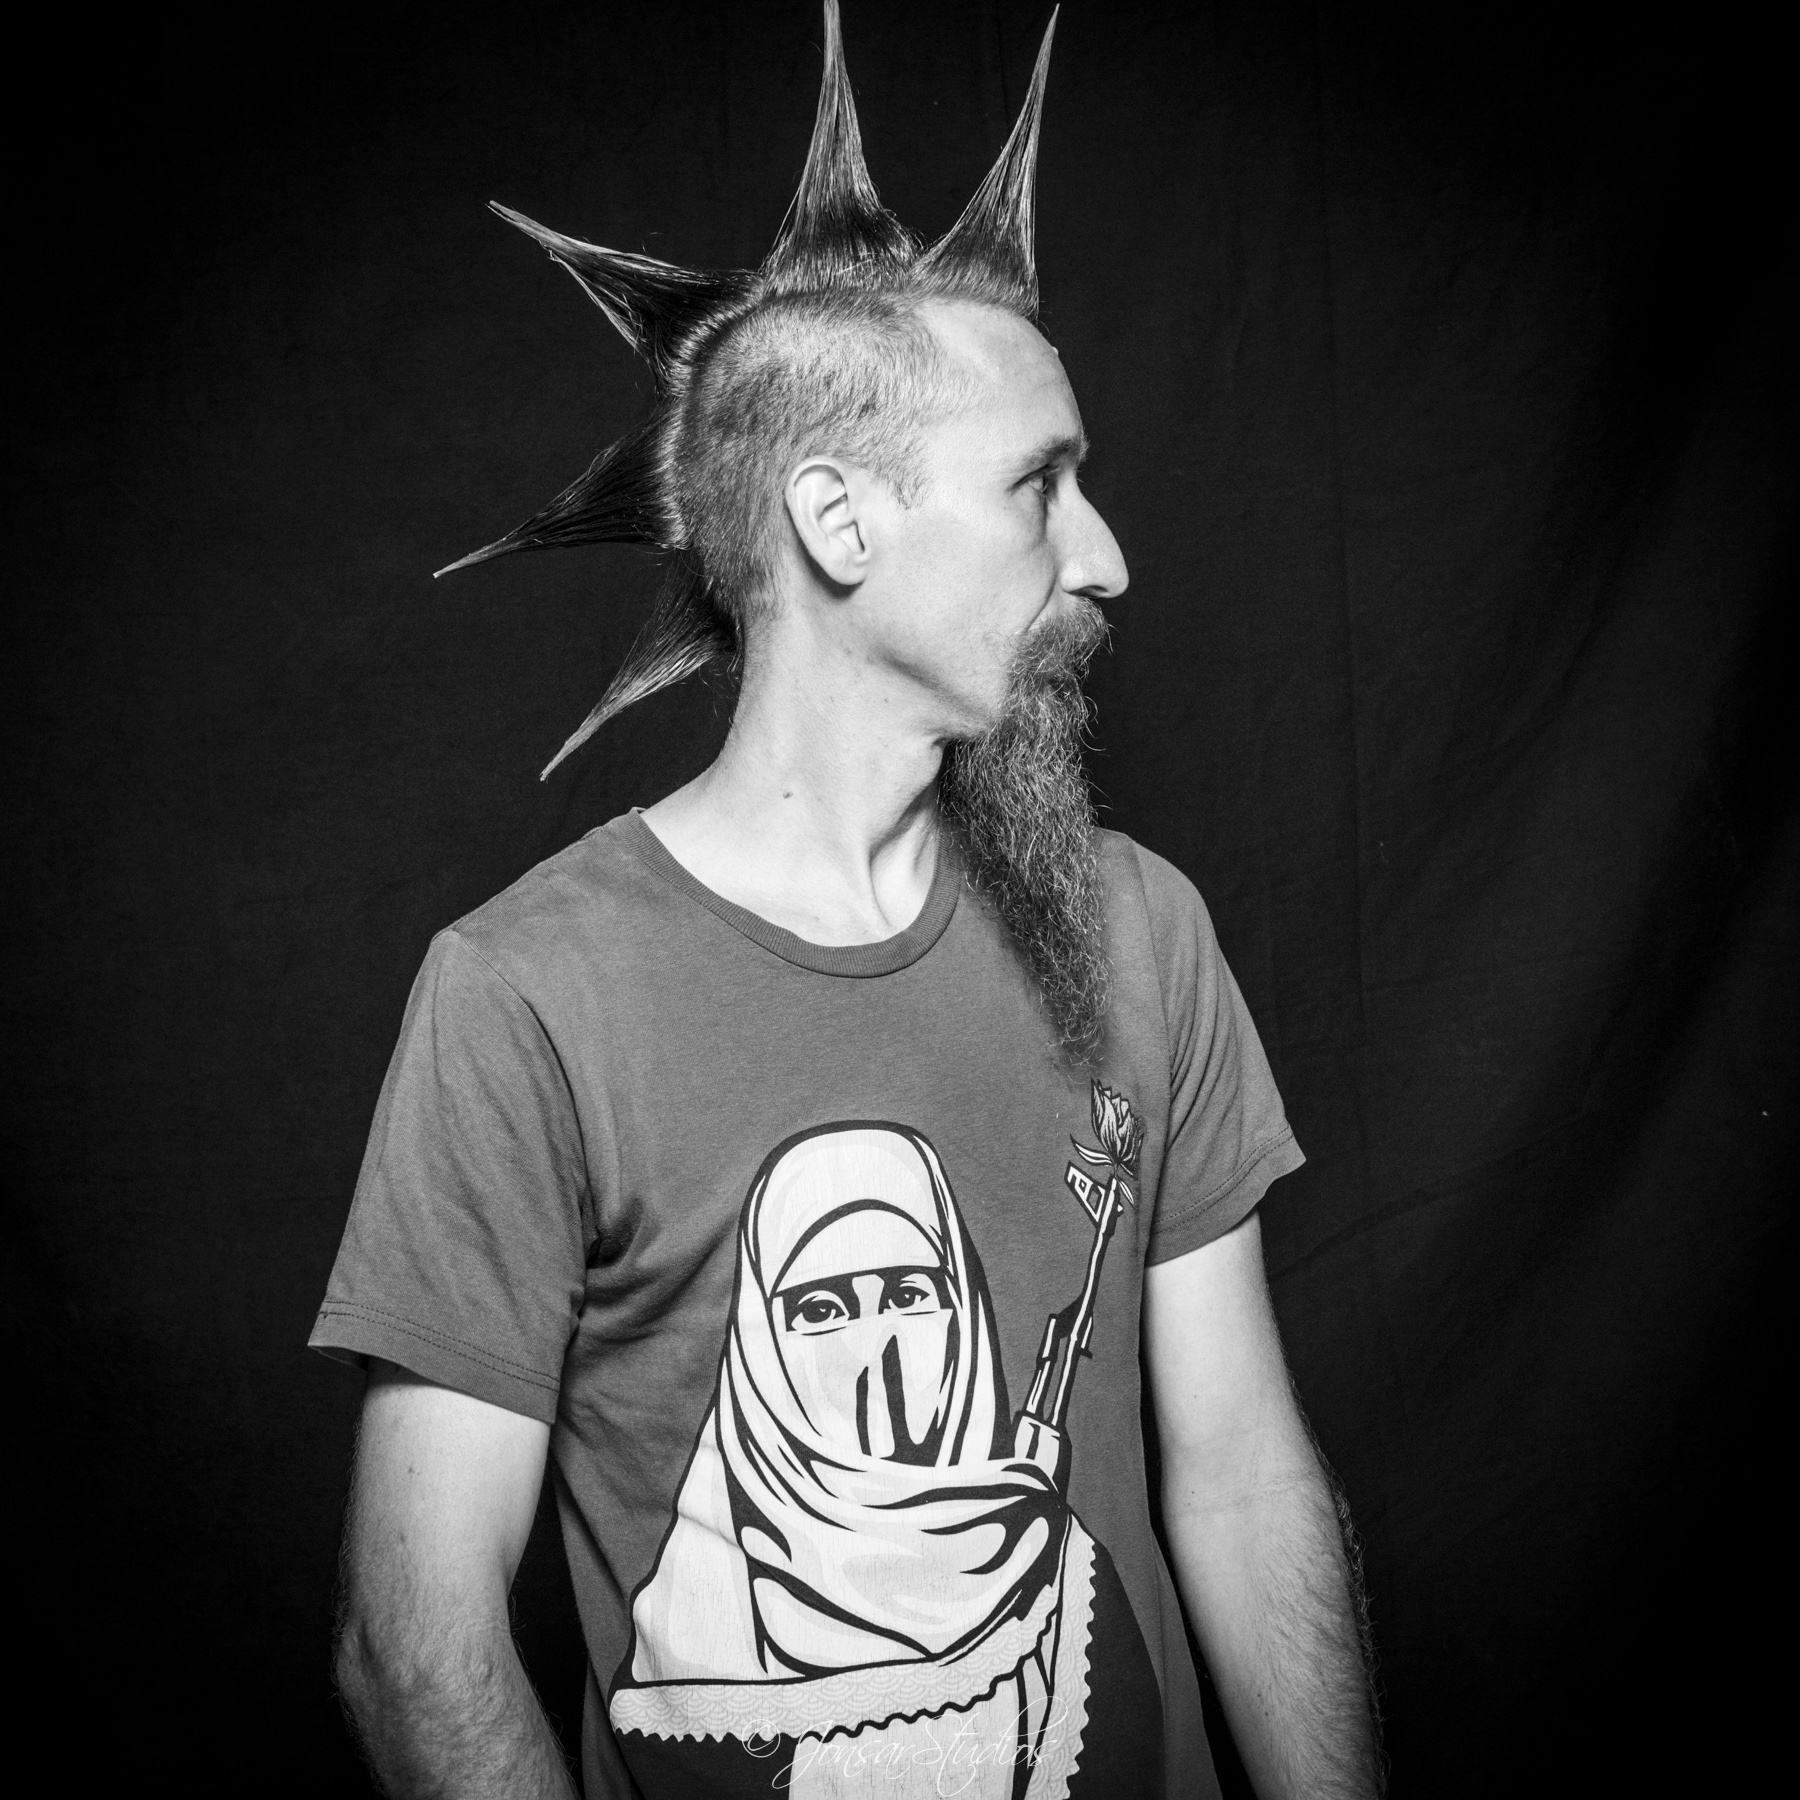 Profile of man with spiked mohawk and gun teeshirt, photographed on black background